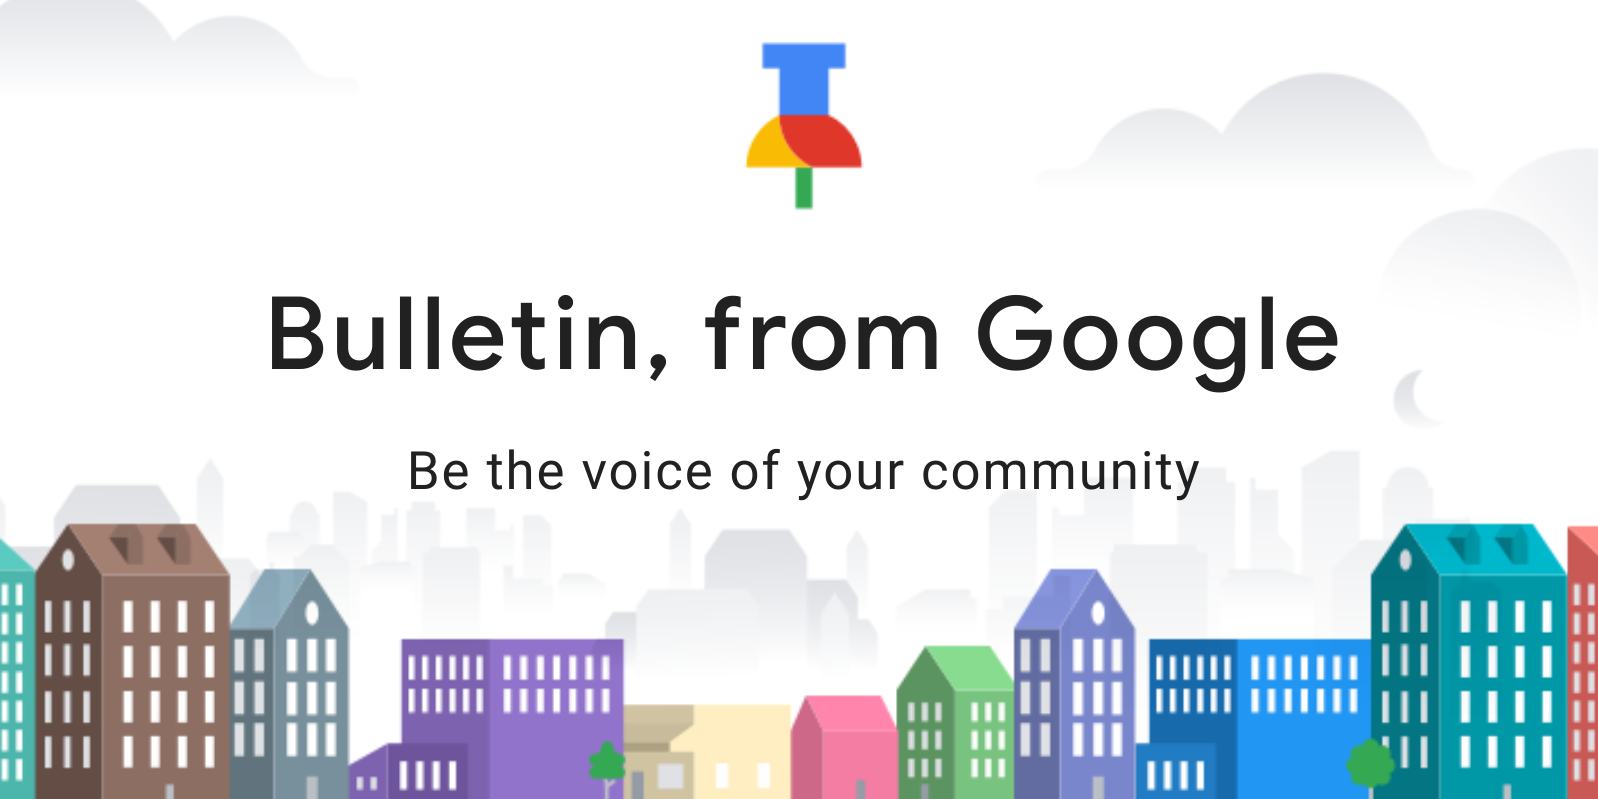 Google launches Bulletin service for sharing 'hyperlocal' community news